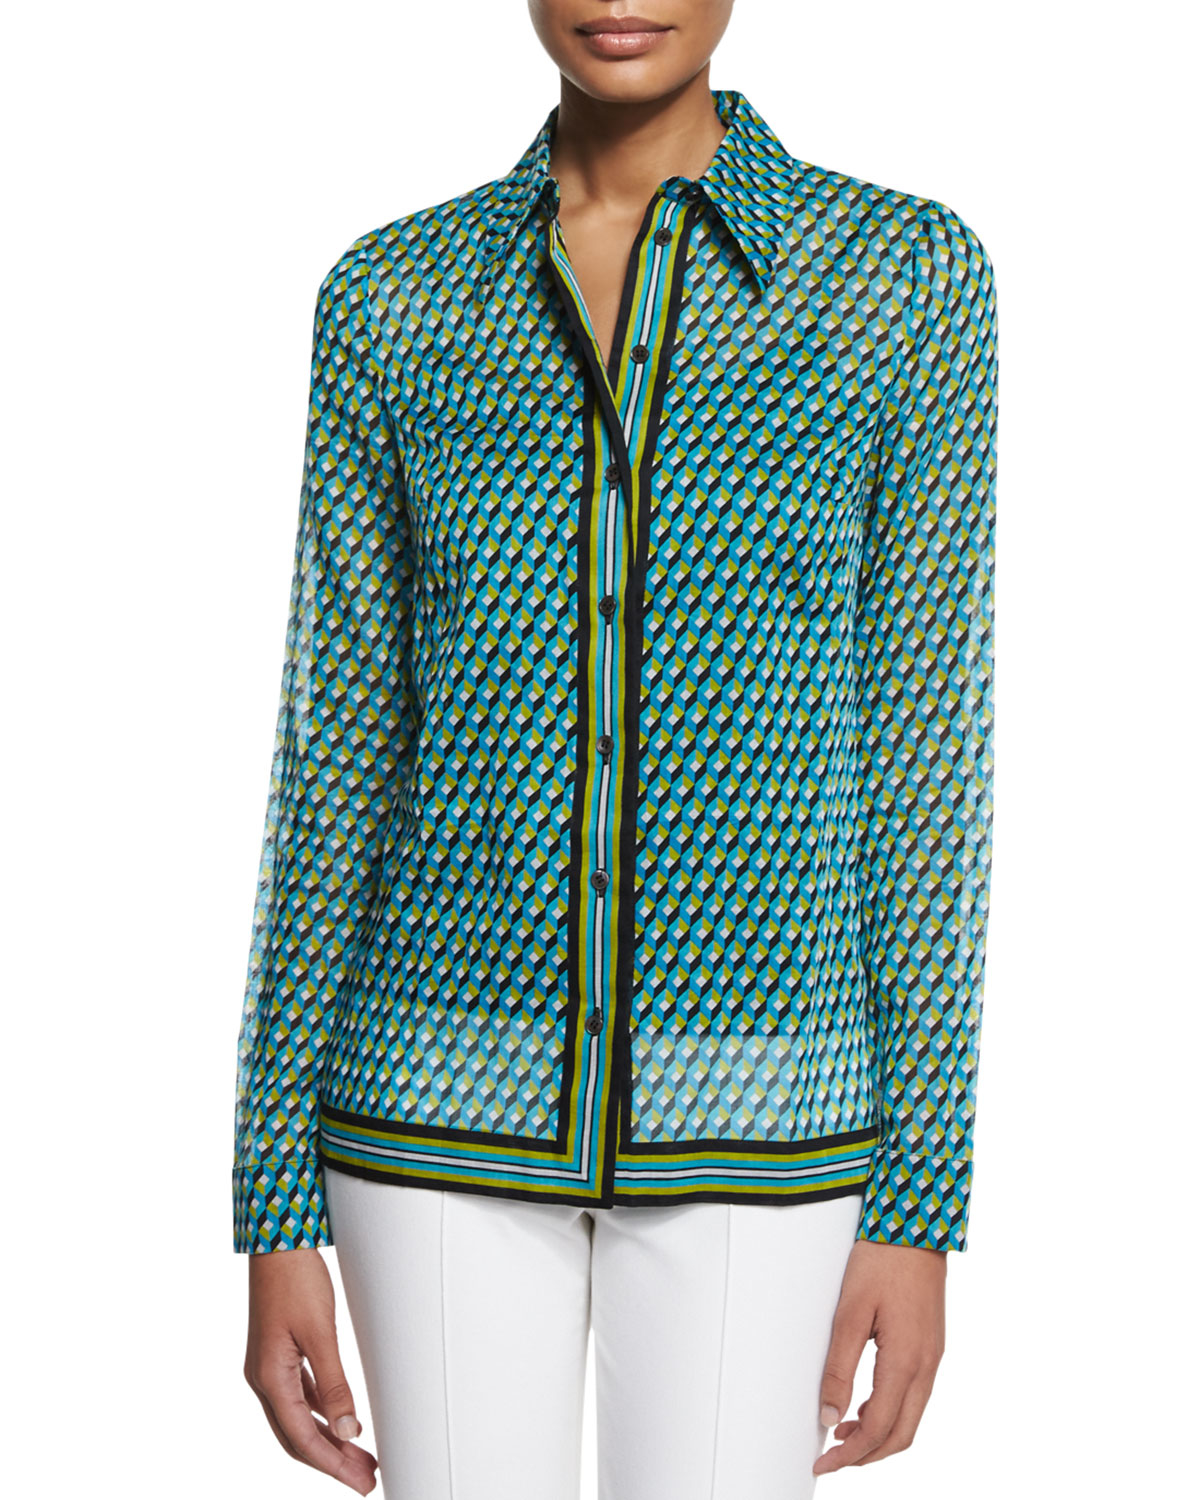 michael kors deco print button down shirt in blue lyst